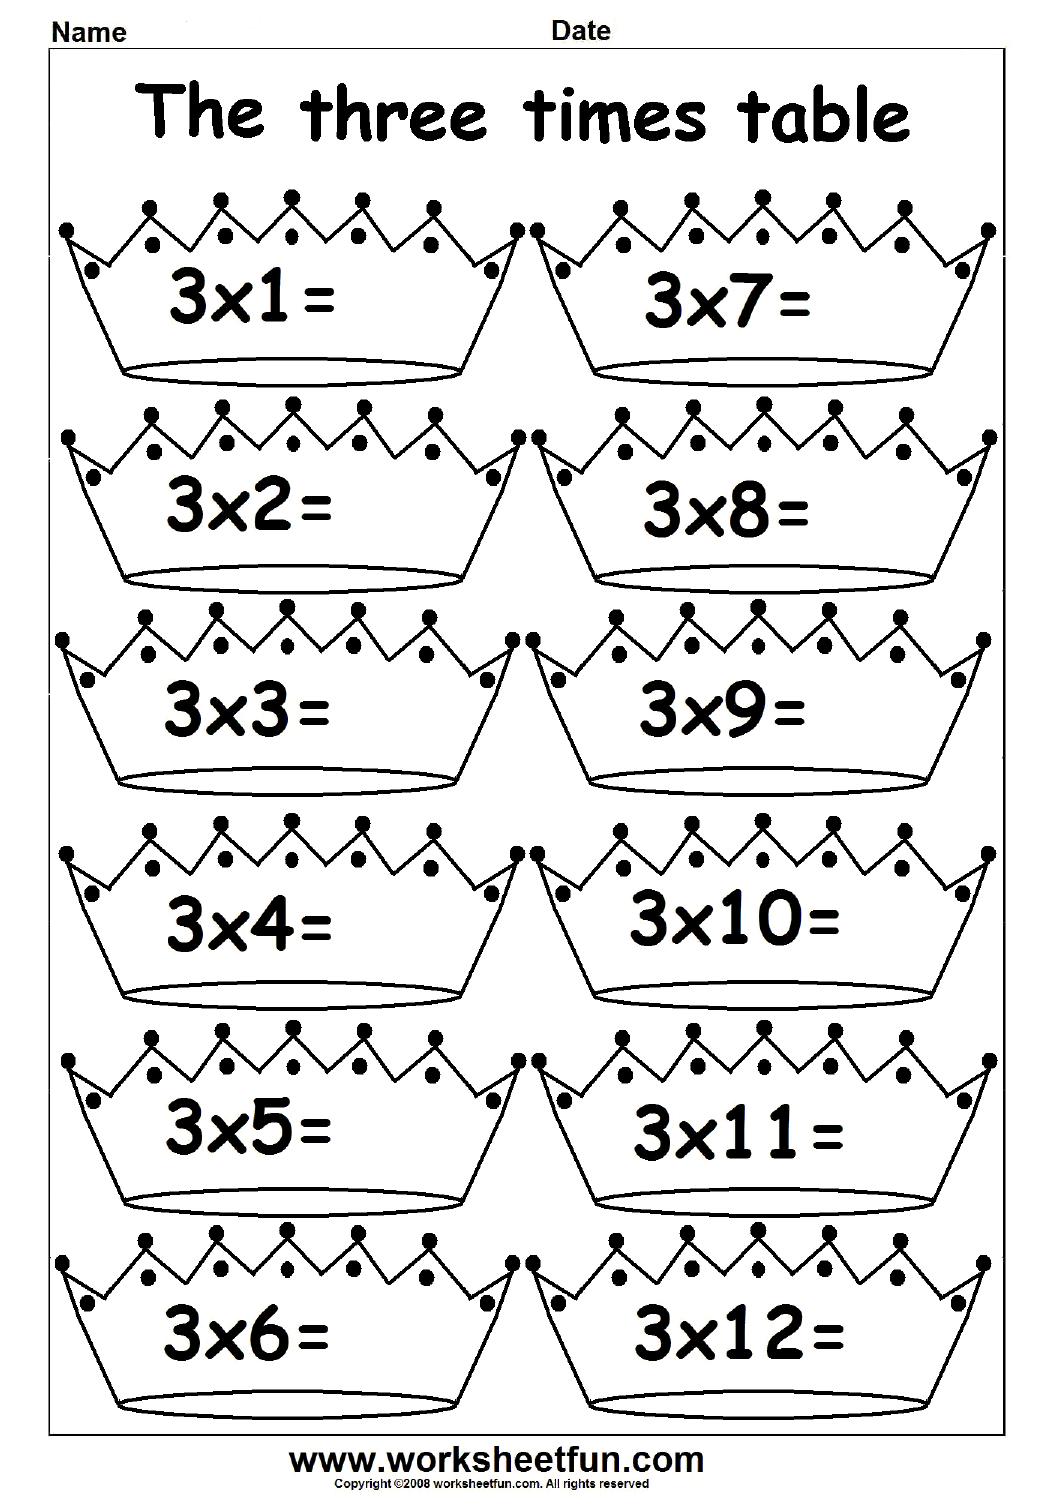 2 3 4 5 6 7 8 9 10 11 and 12 times table fun times table 2 3 4 5 6 7 8 9 10 11 and 12 times table fun times table worksheets ibookread Download